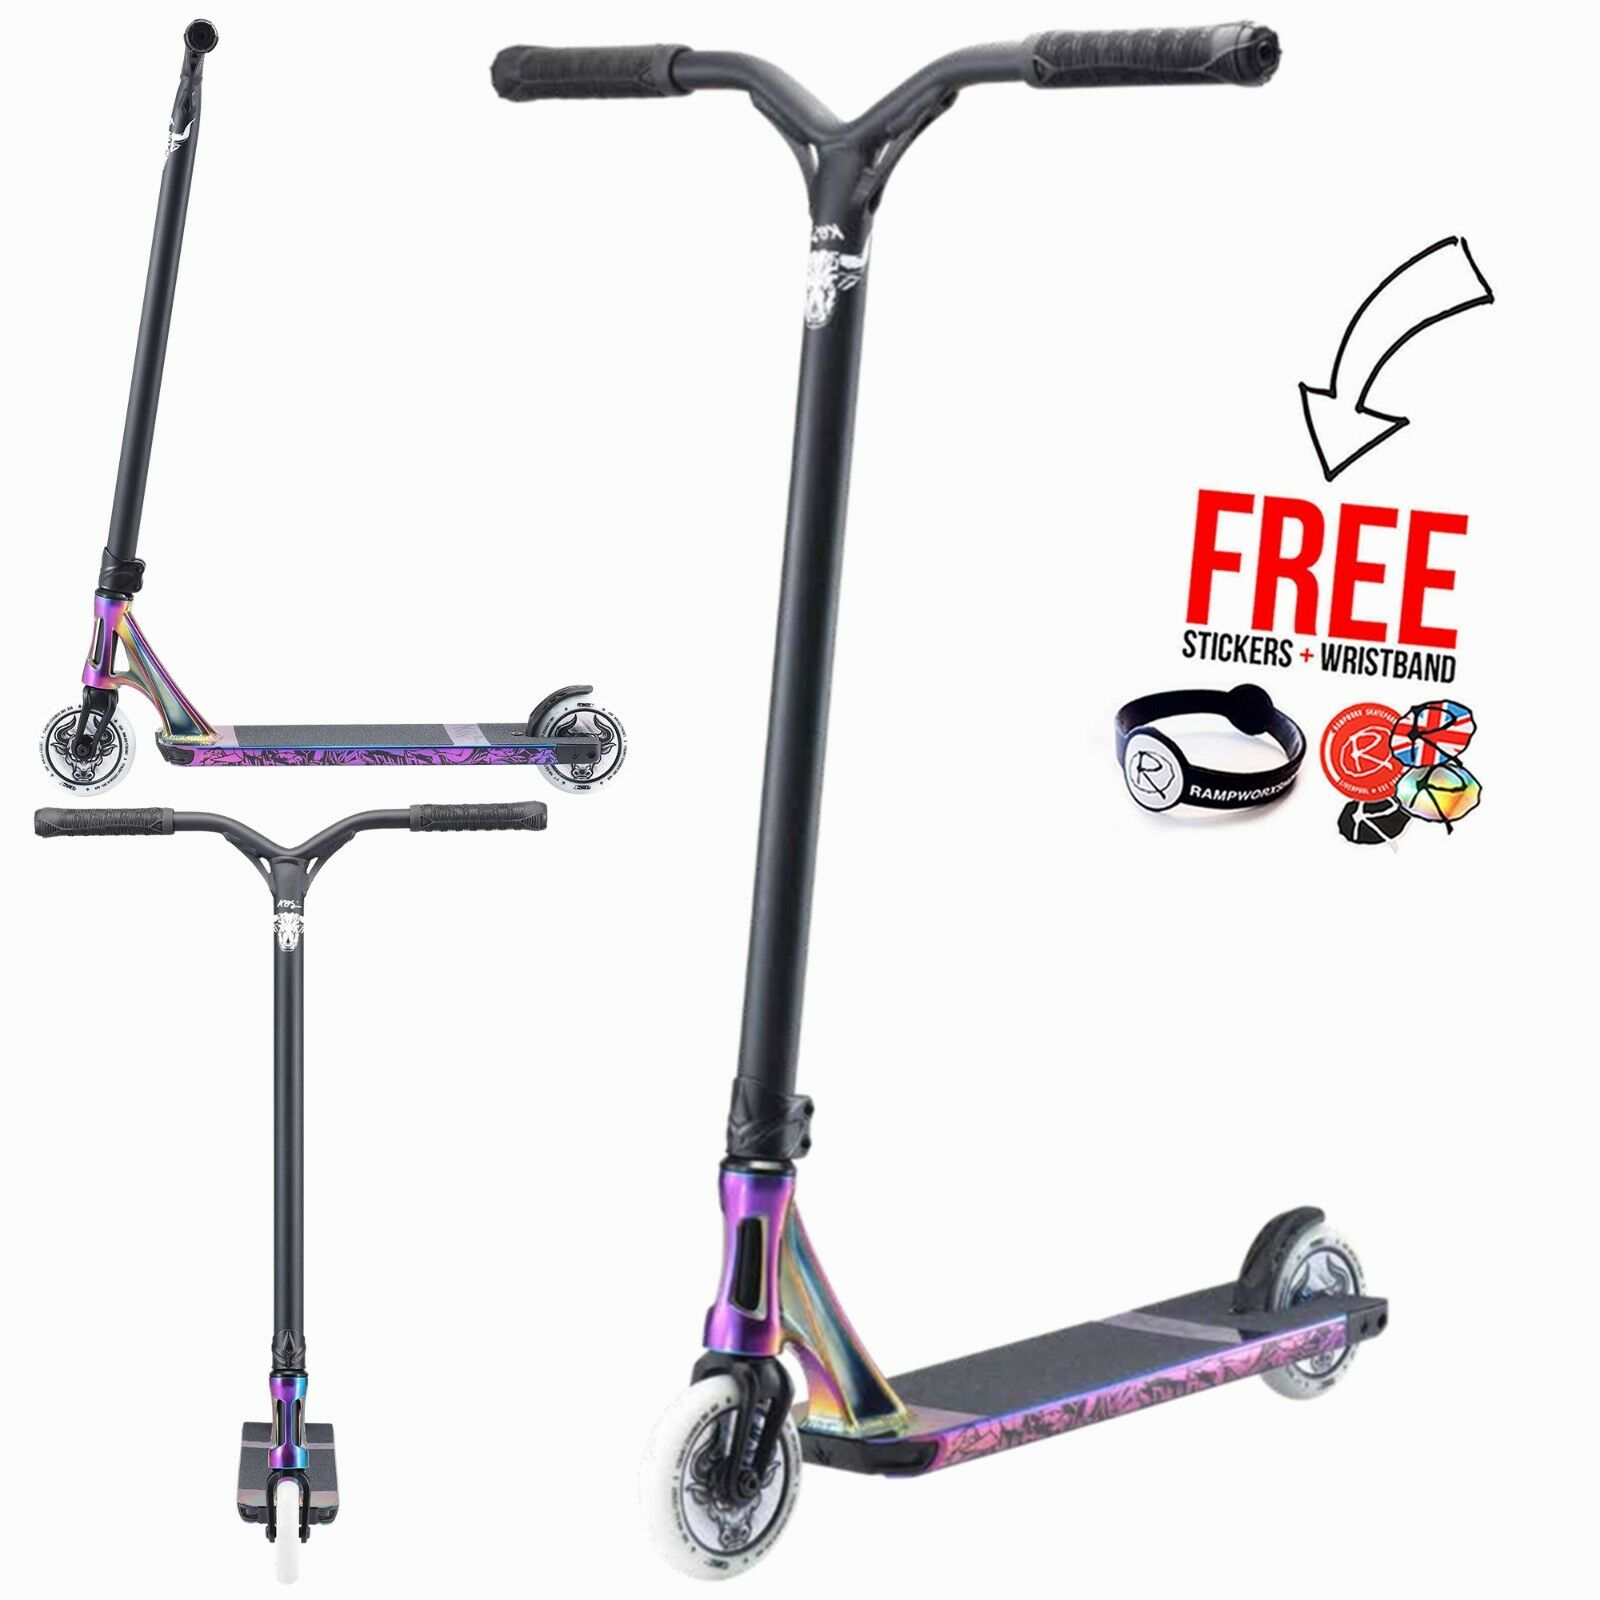 Blaunt Scooter 2019 KOS Charger S6 Complete Stunt Scooter, Oil Smooth